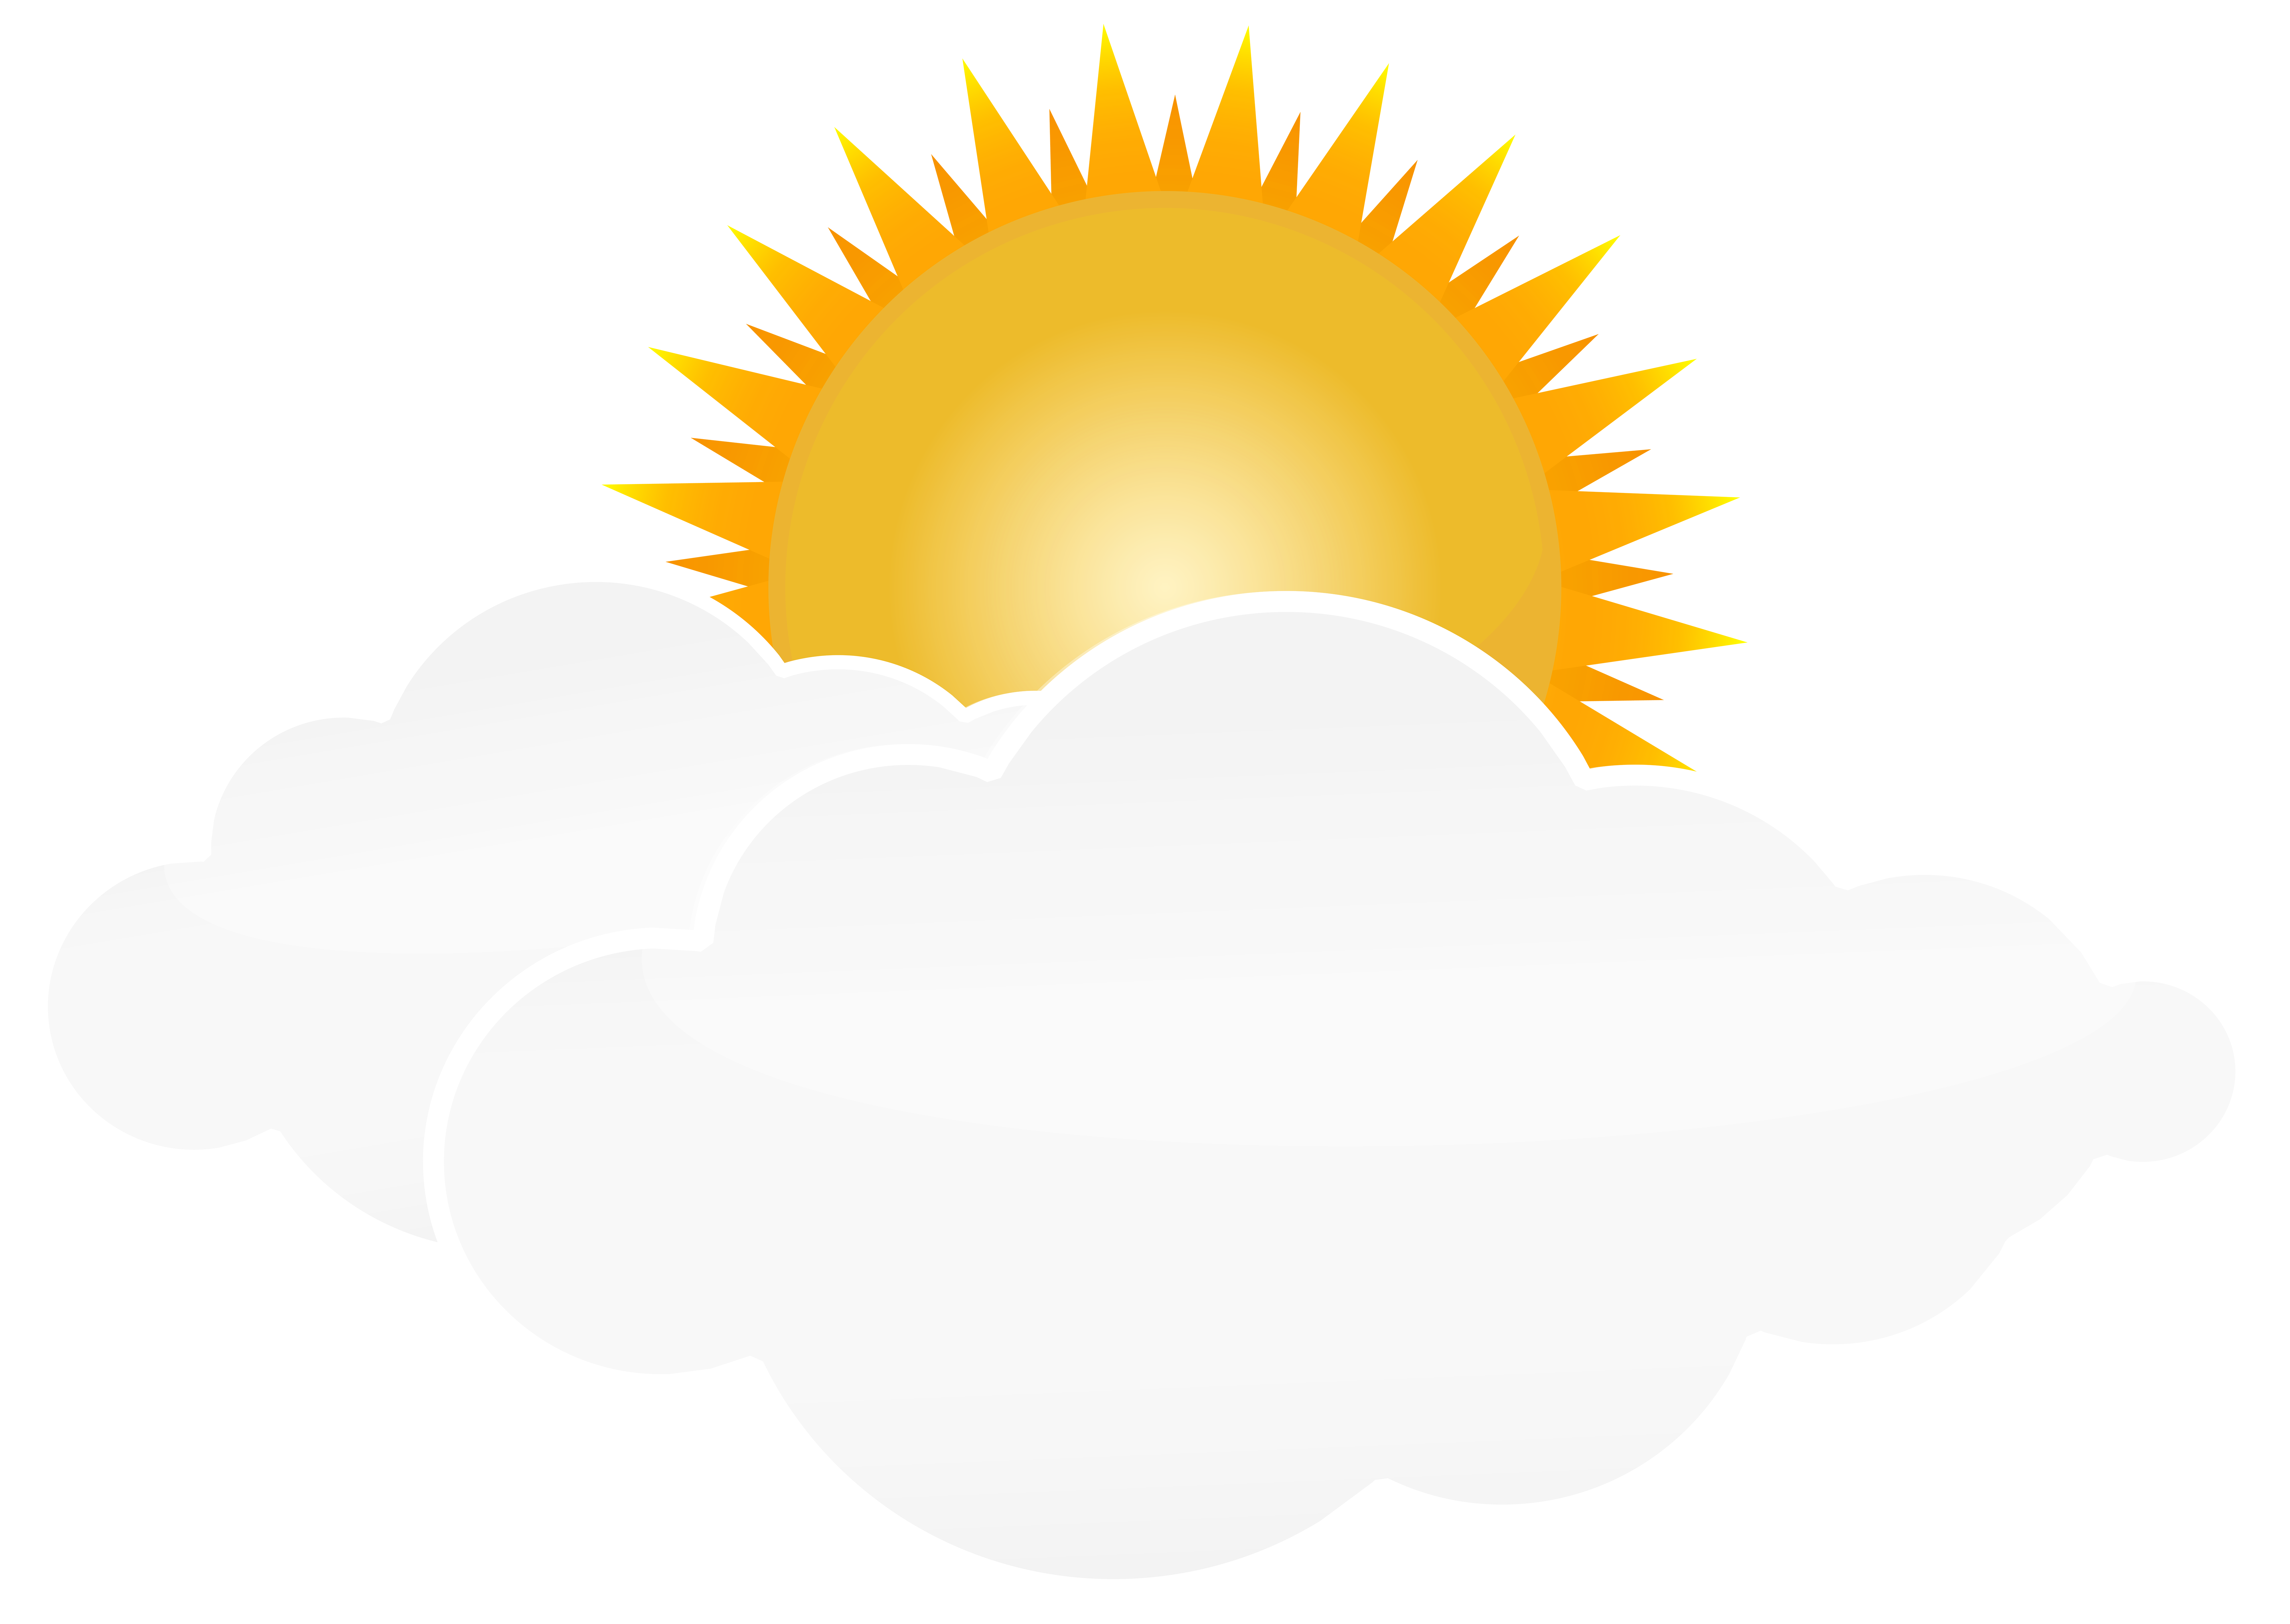 Clipart sun afternoon. With clouds png transparent